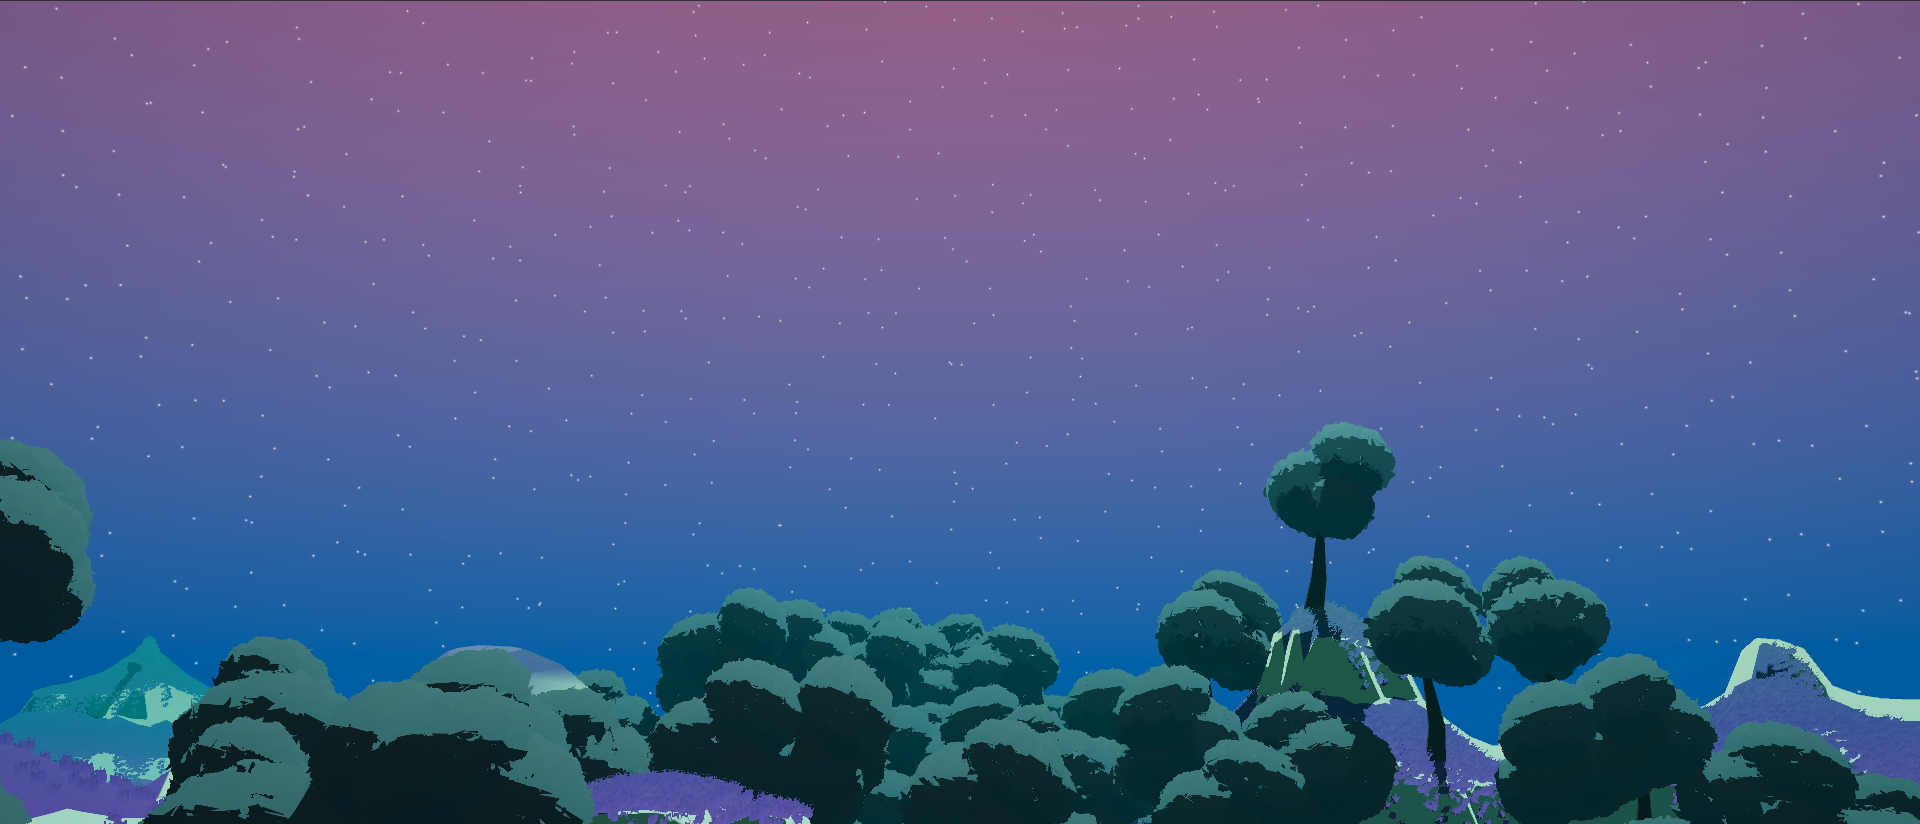 the skybox in game, stars on a gradient sky behind a landscape of trees